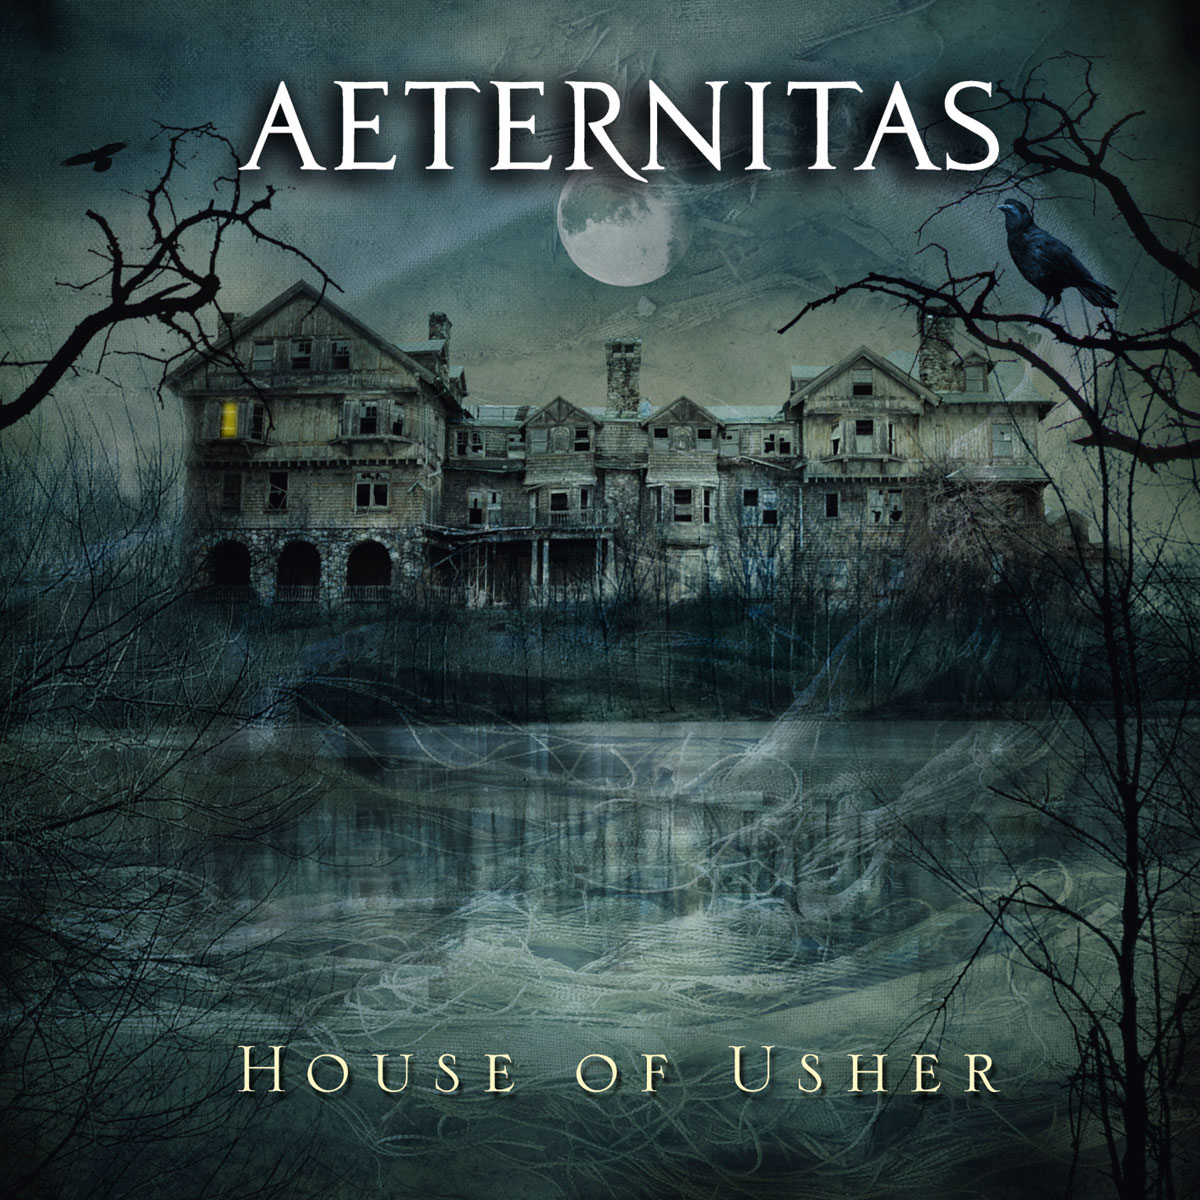 aeternitas_usher_final2016_1200